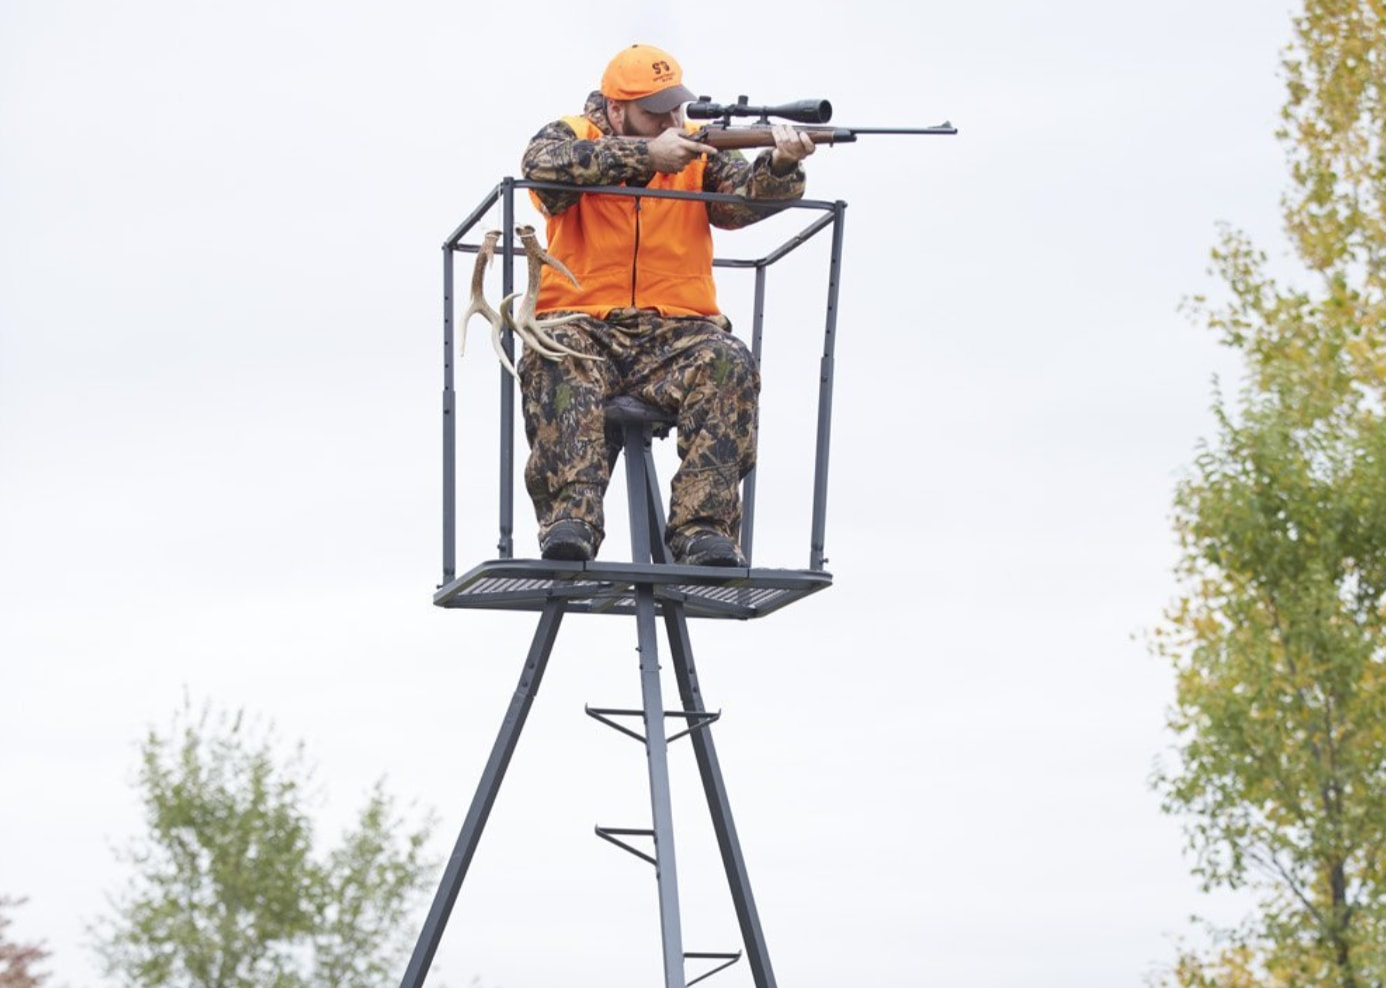 007064ef3f2 Guide Gear 13′ Deluxe Tripod Deer Stand (Editors Pick)